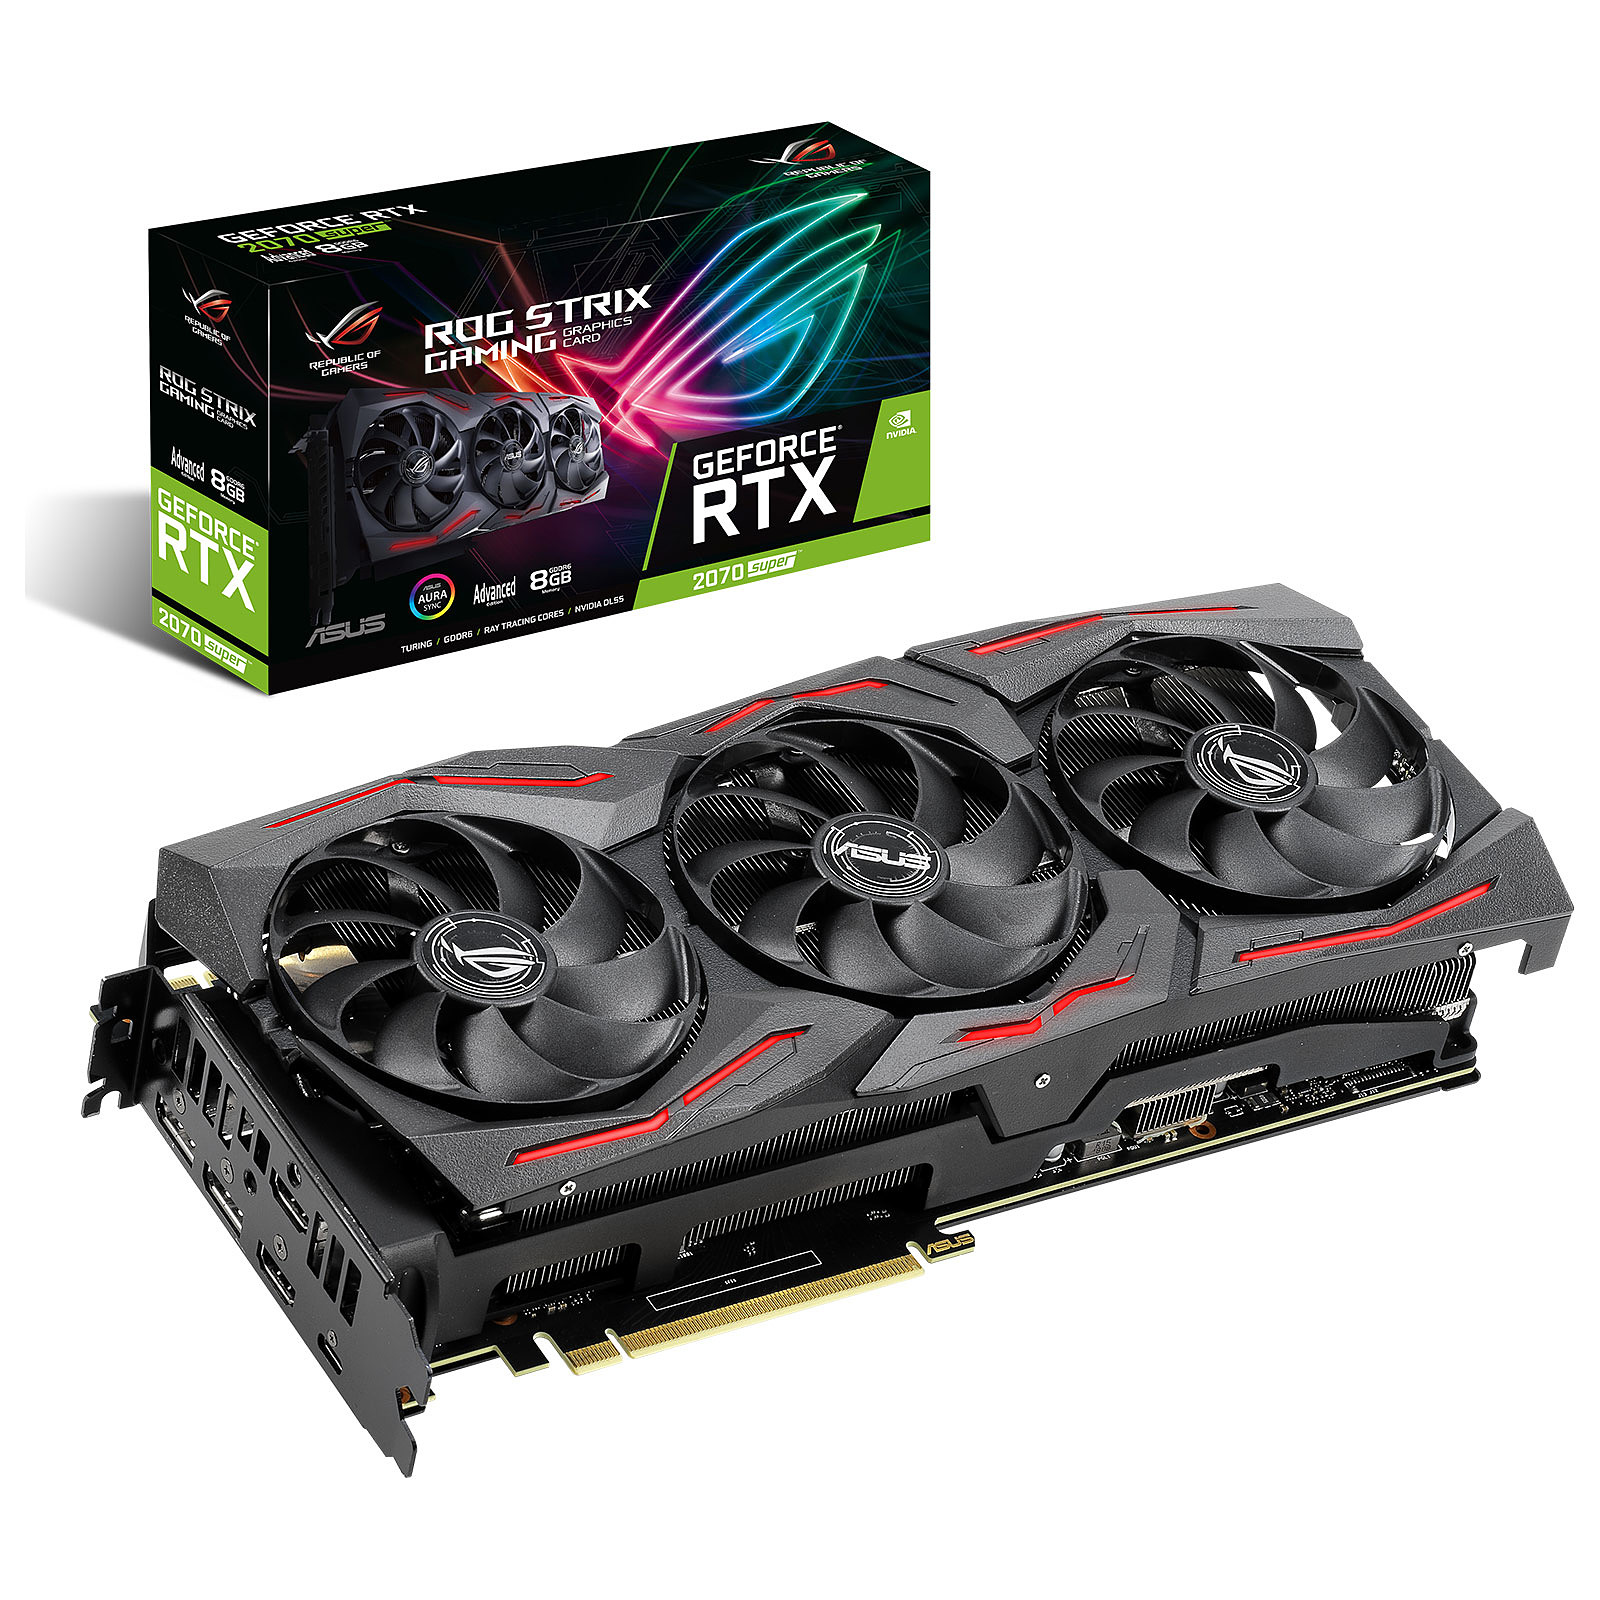 ASUS GeForce RTX 2070 SUPER ROG-STRIX-RTX2070S-A8G-GAMING